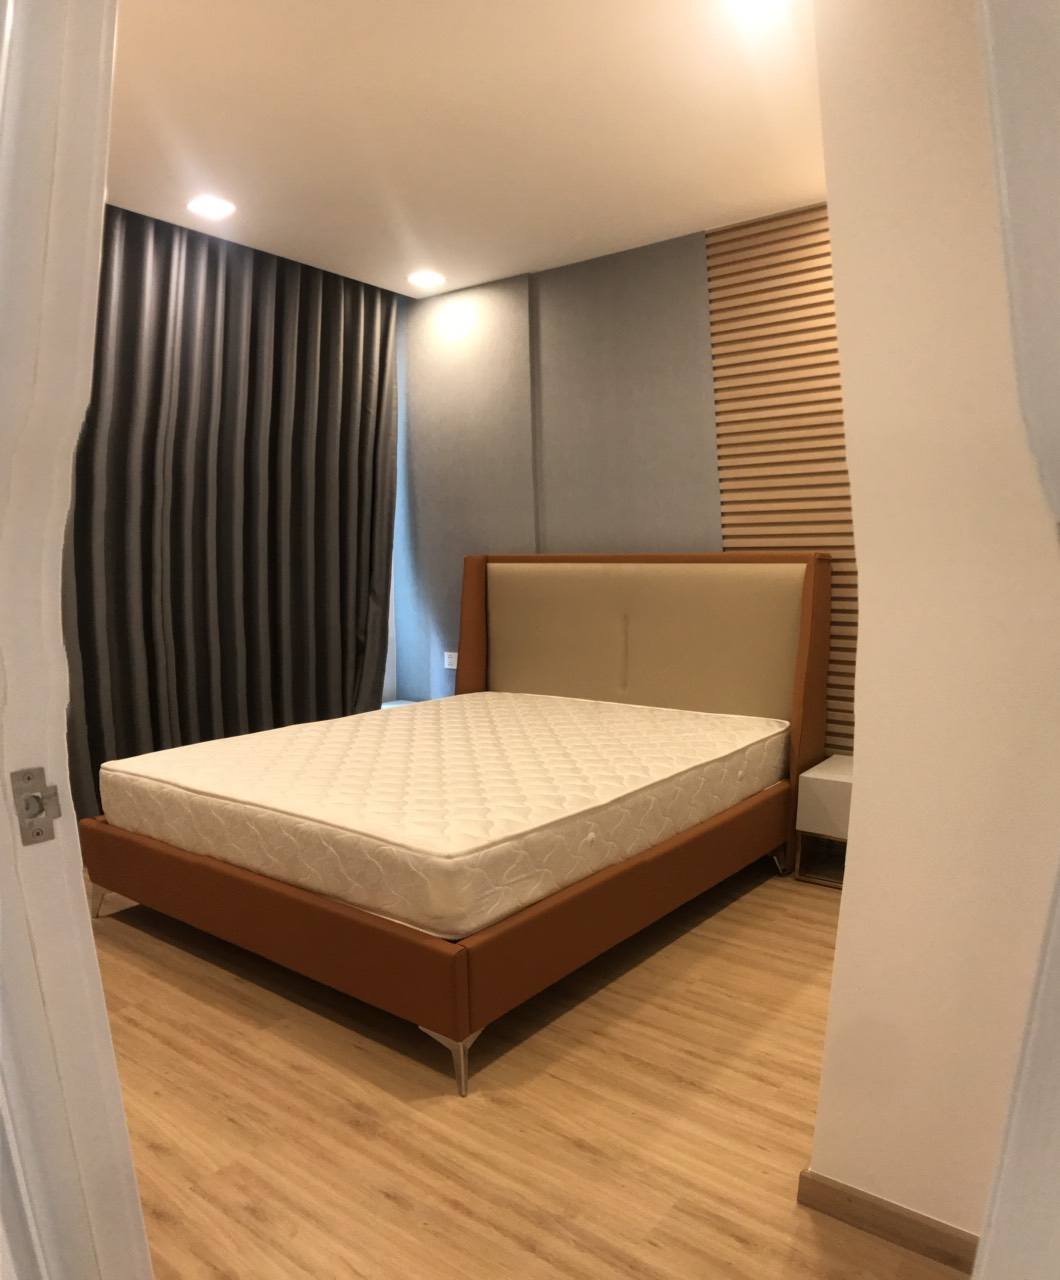 apartment for rent in district 2 hcmc vista verde apartment for rent in district 2 hcmc D221565(17)